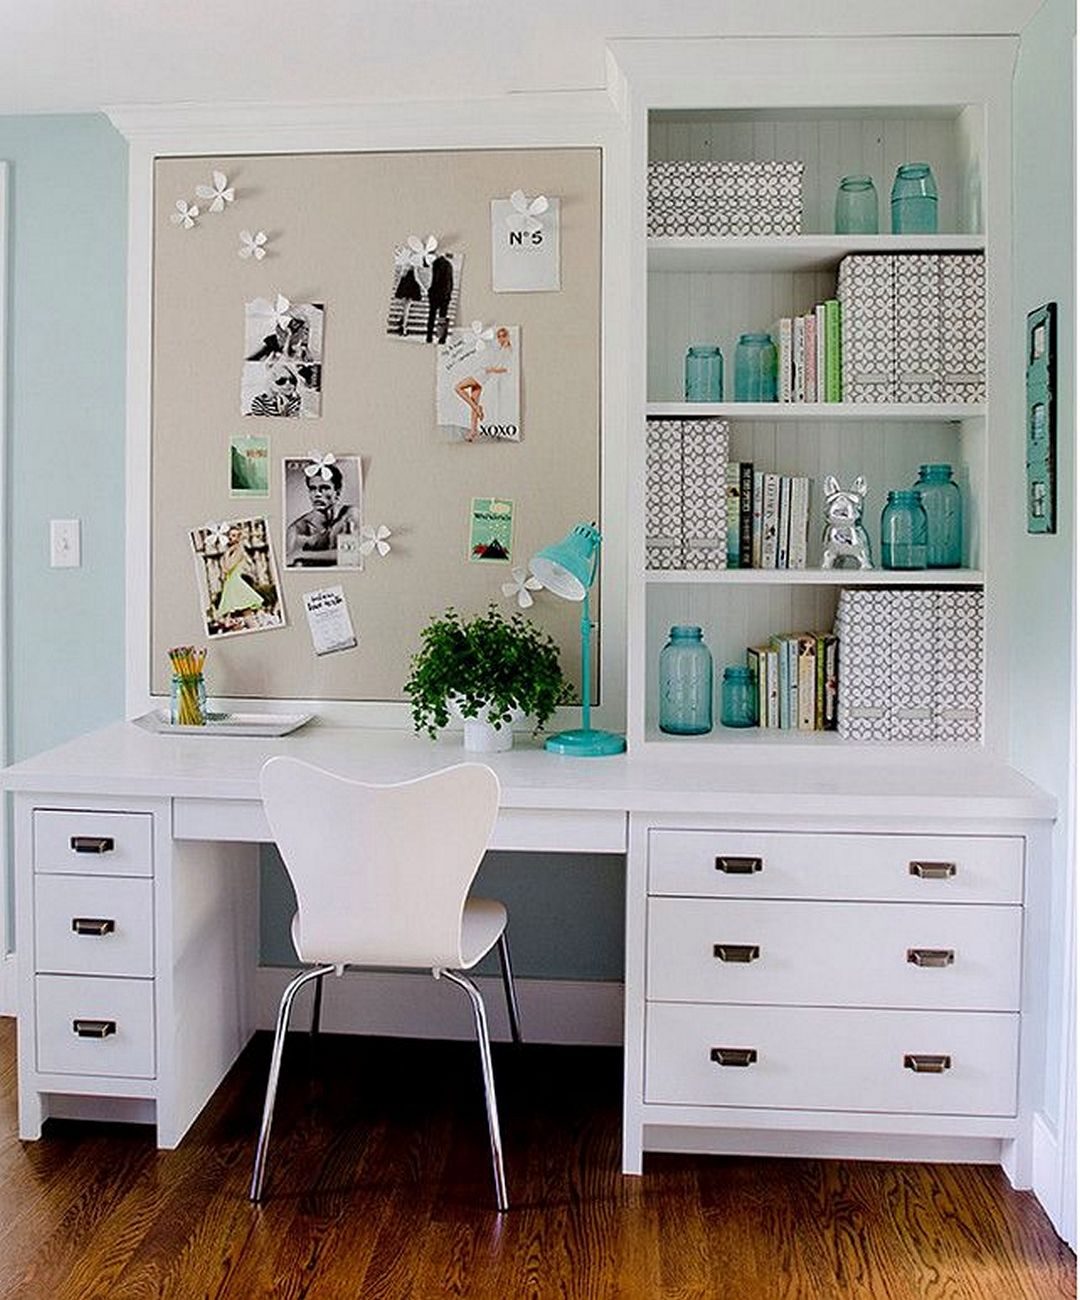 170 Beautiful Home Office Design Ideas | Office designs, Workplace ...